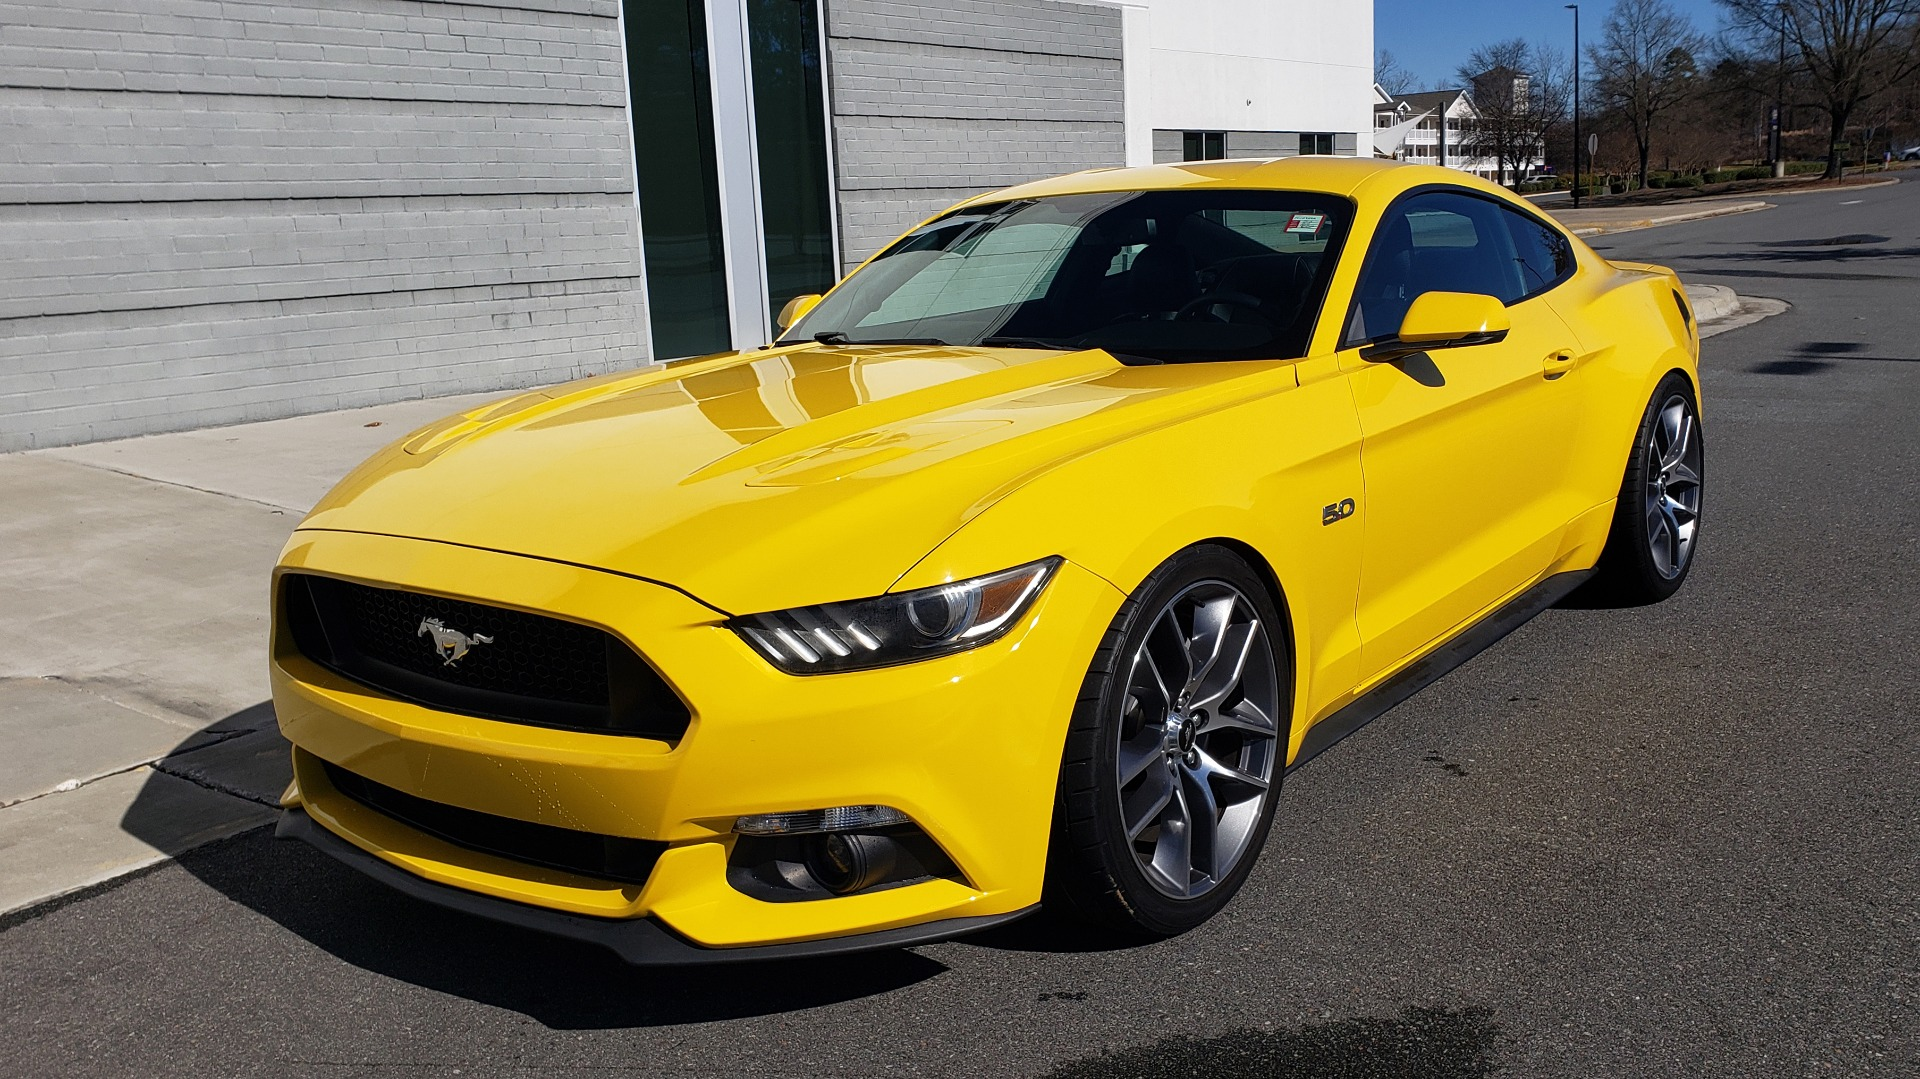 Used 2015 Ford MUSTANG GT 5.0L COUPE PREMIUM / 6-SPD MAN / SHAKER AUDIO / NAV for sale Sold at Formula Imports in Charlotte NC 28227 2